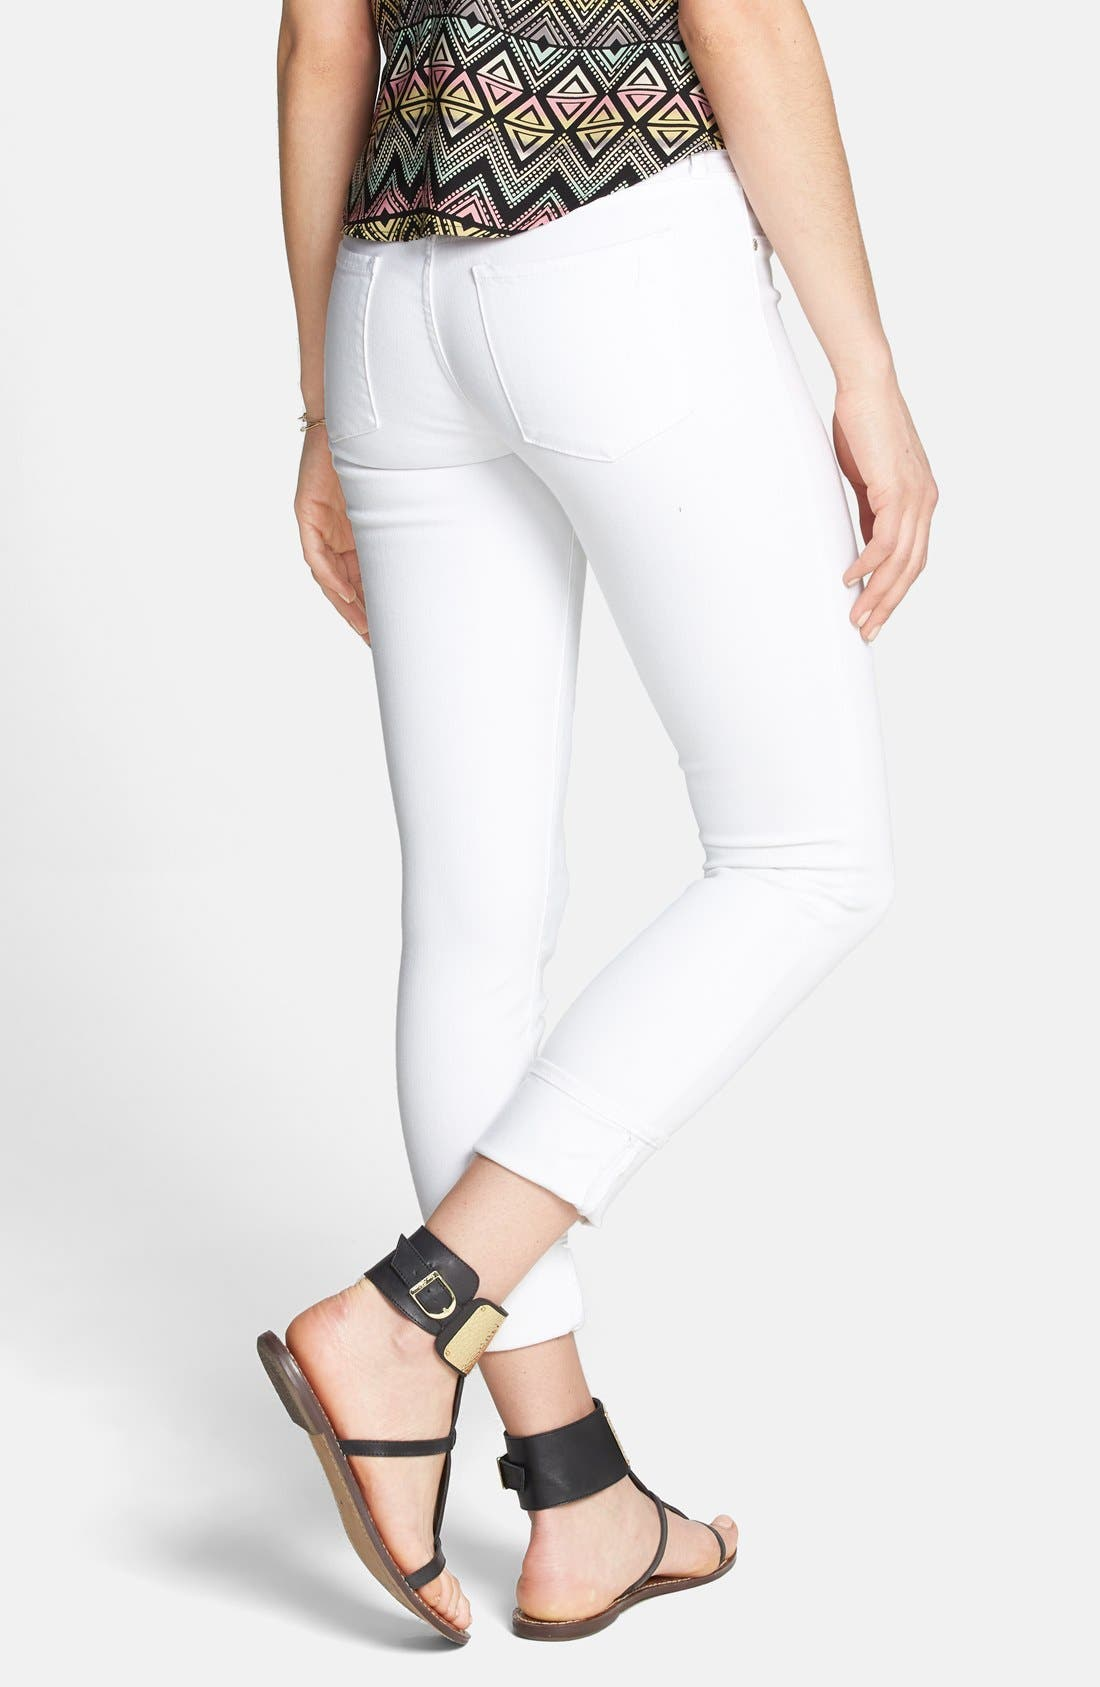 Alternate Image 2  - Articles of Society 'Zoey' Crop Skinny Jeans (Optic White) (Juniors)